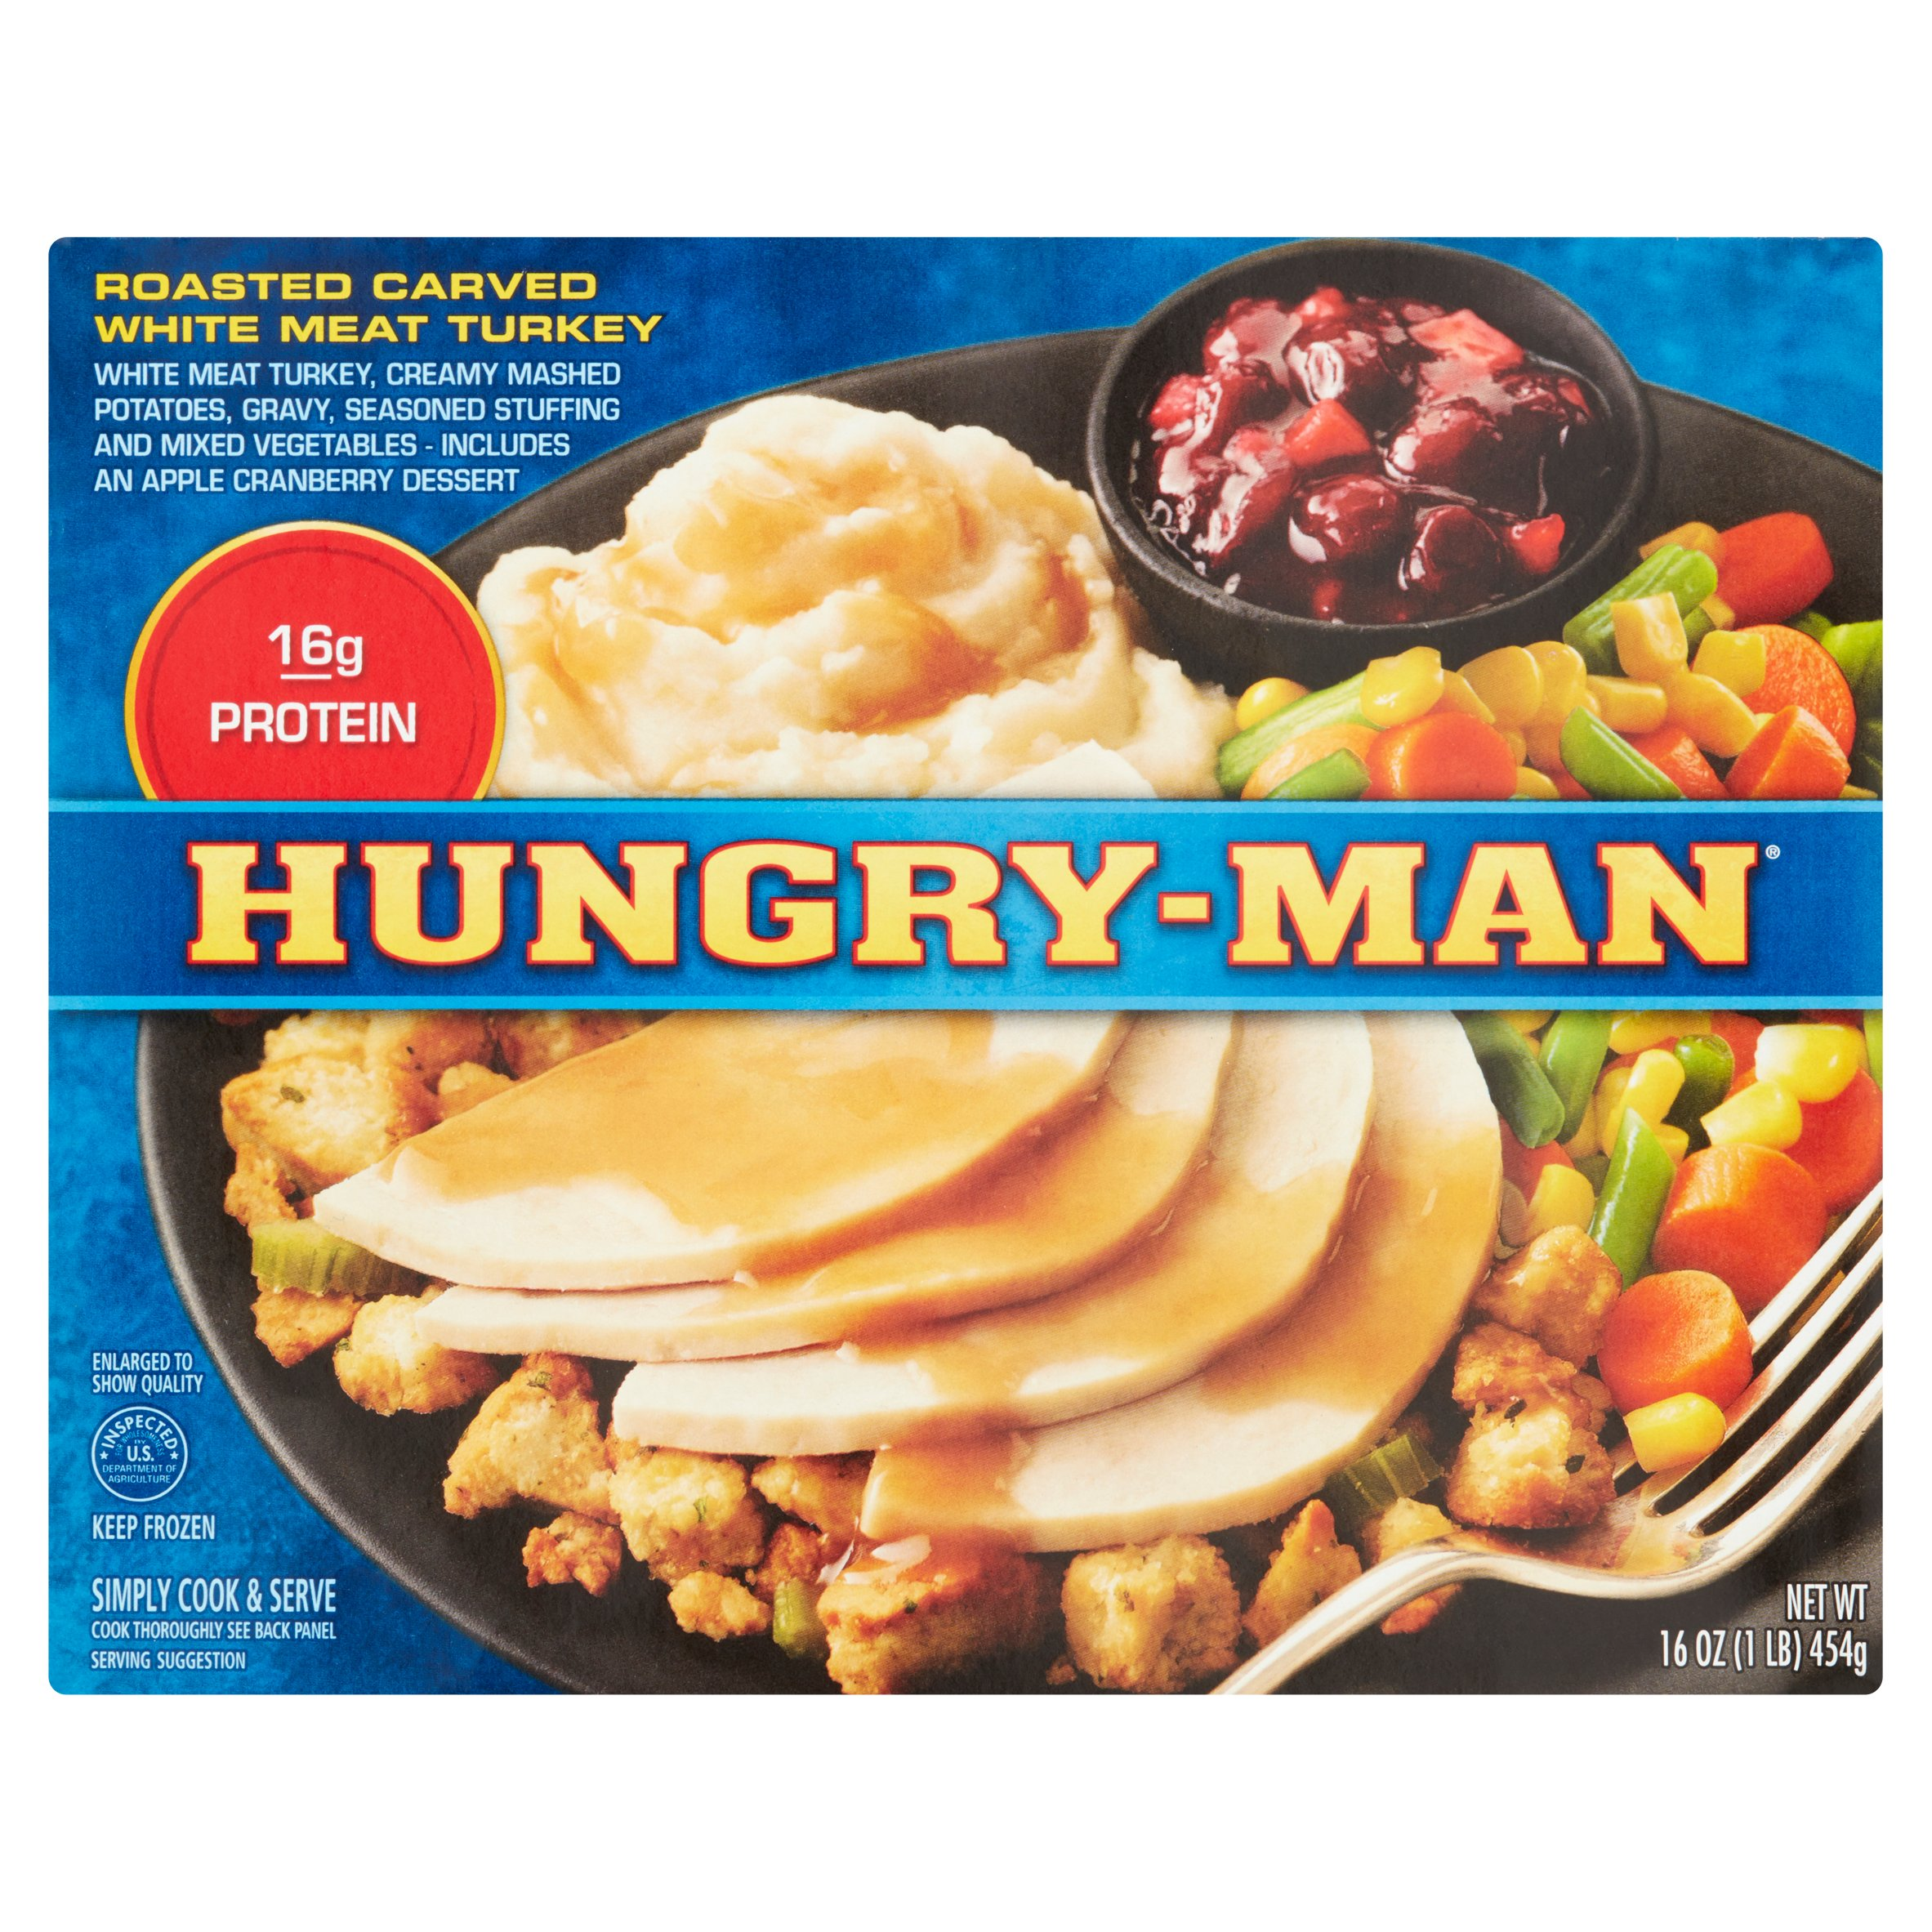 Hungry-Man® Roasted Carved White Meat Turkey Frozen Dinner 16 oz. Box